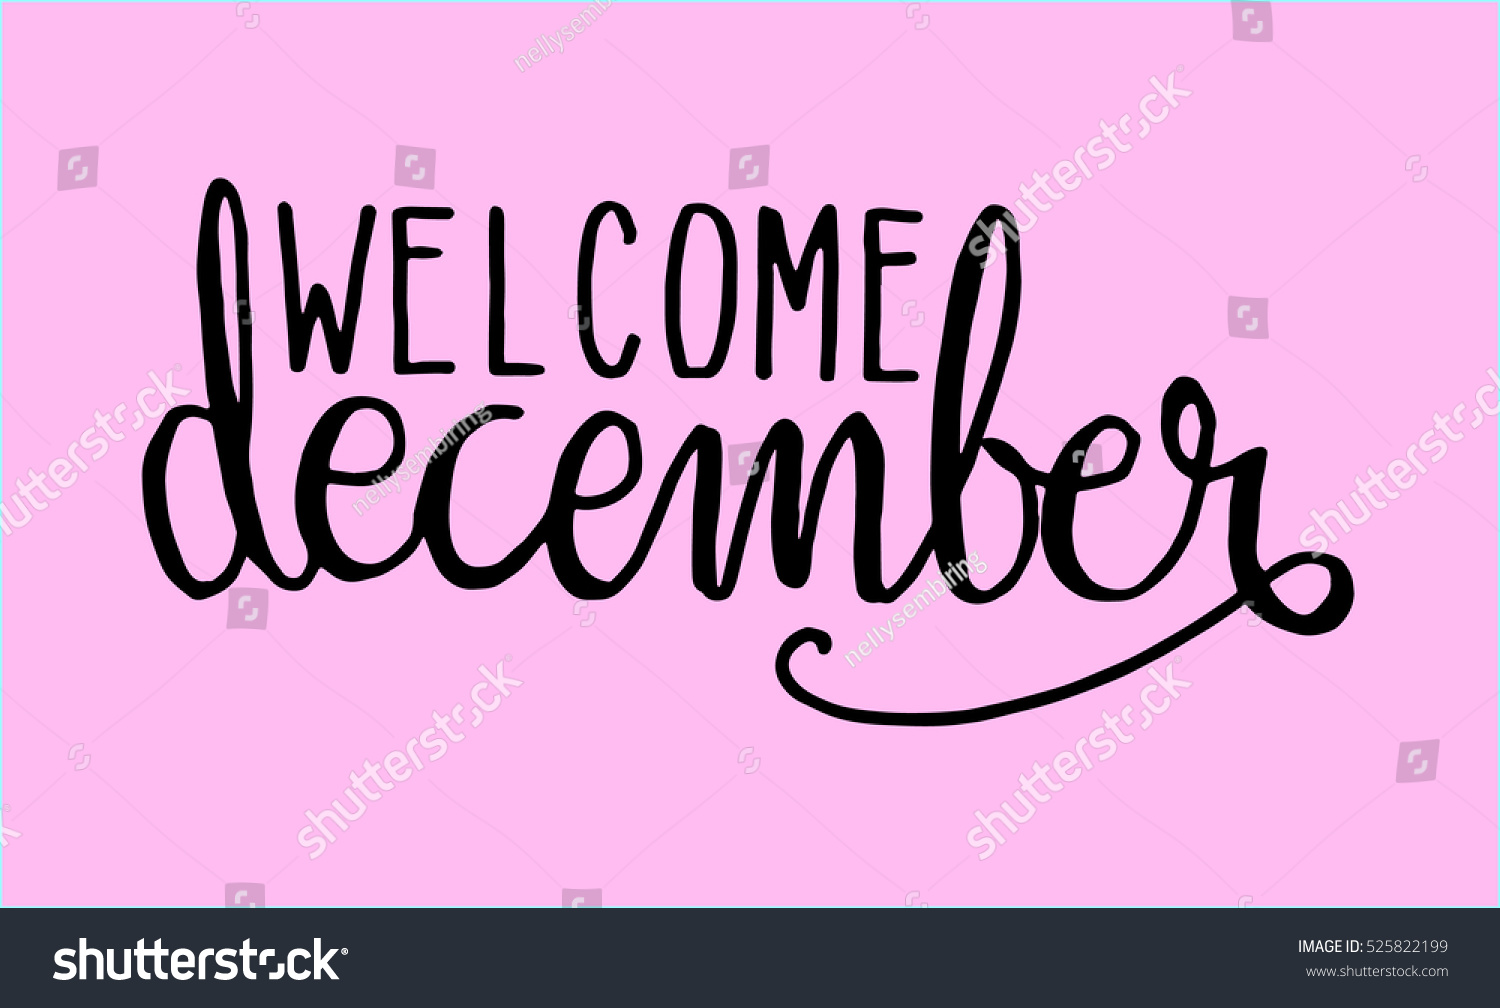 Gambar Welcome Desember 73